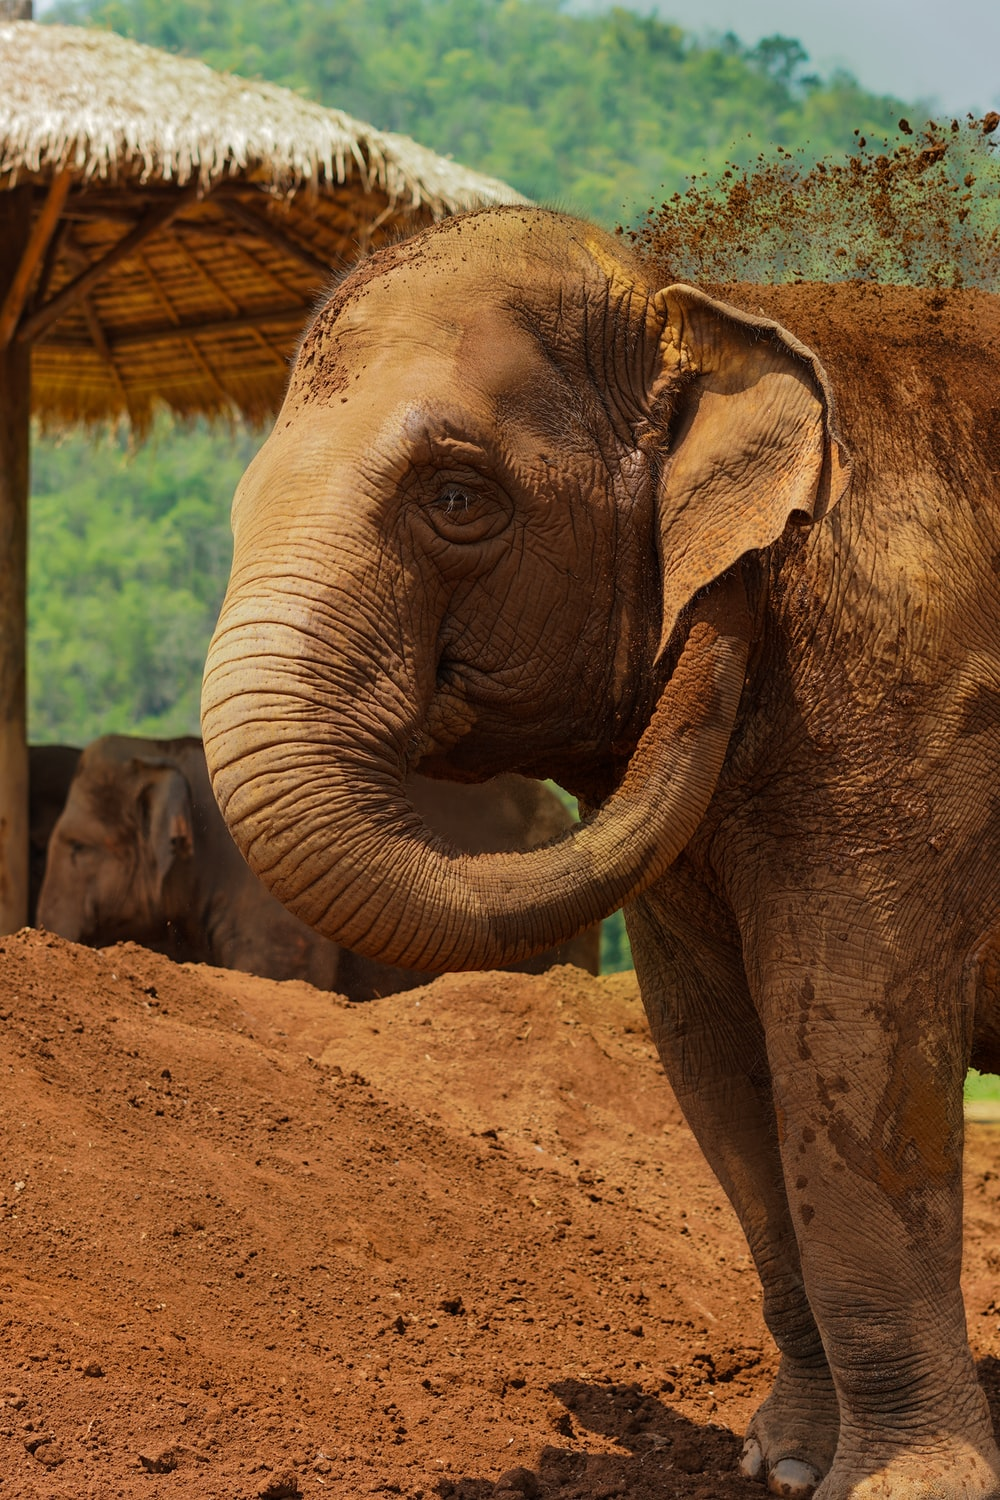 brown elephant playing with dirt during daytime